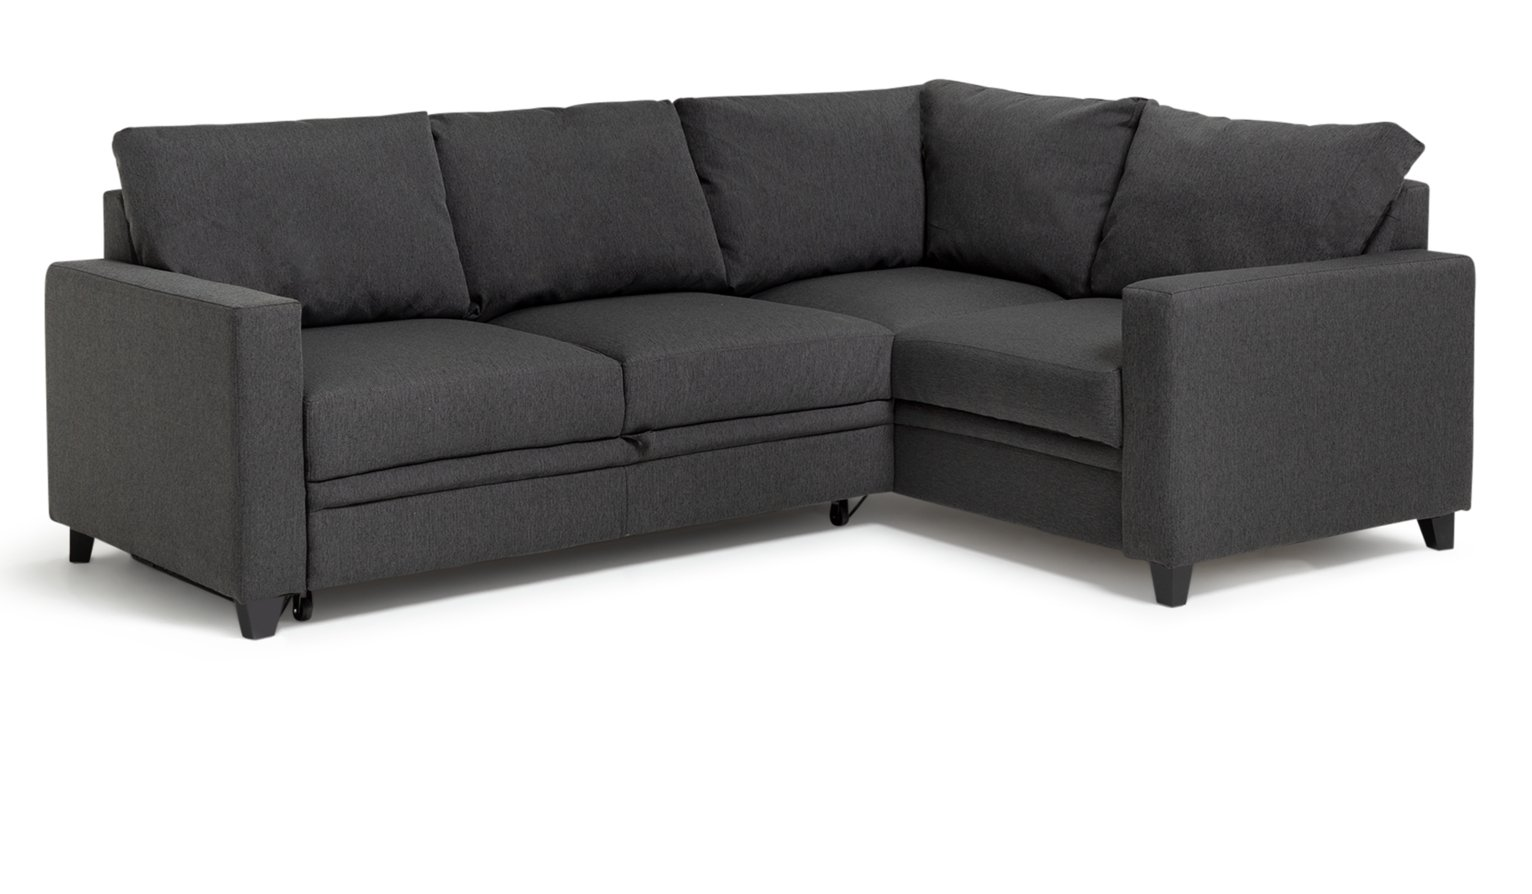 Sale on hygena seattle fabric right hand corner sofa bed for Charcoal sofa